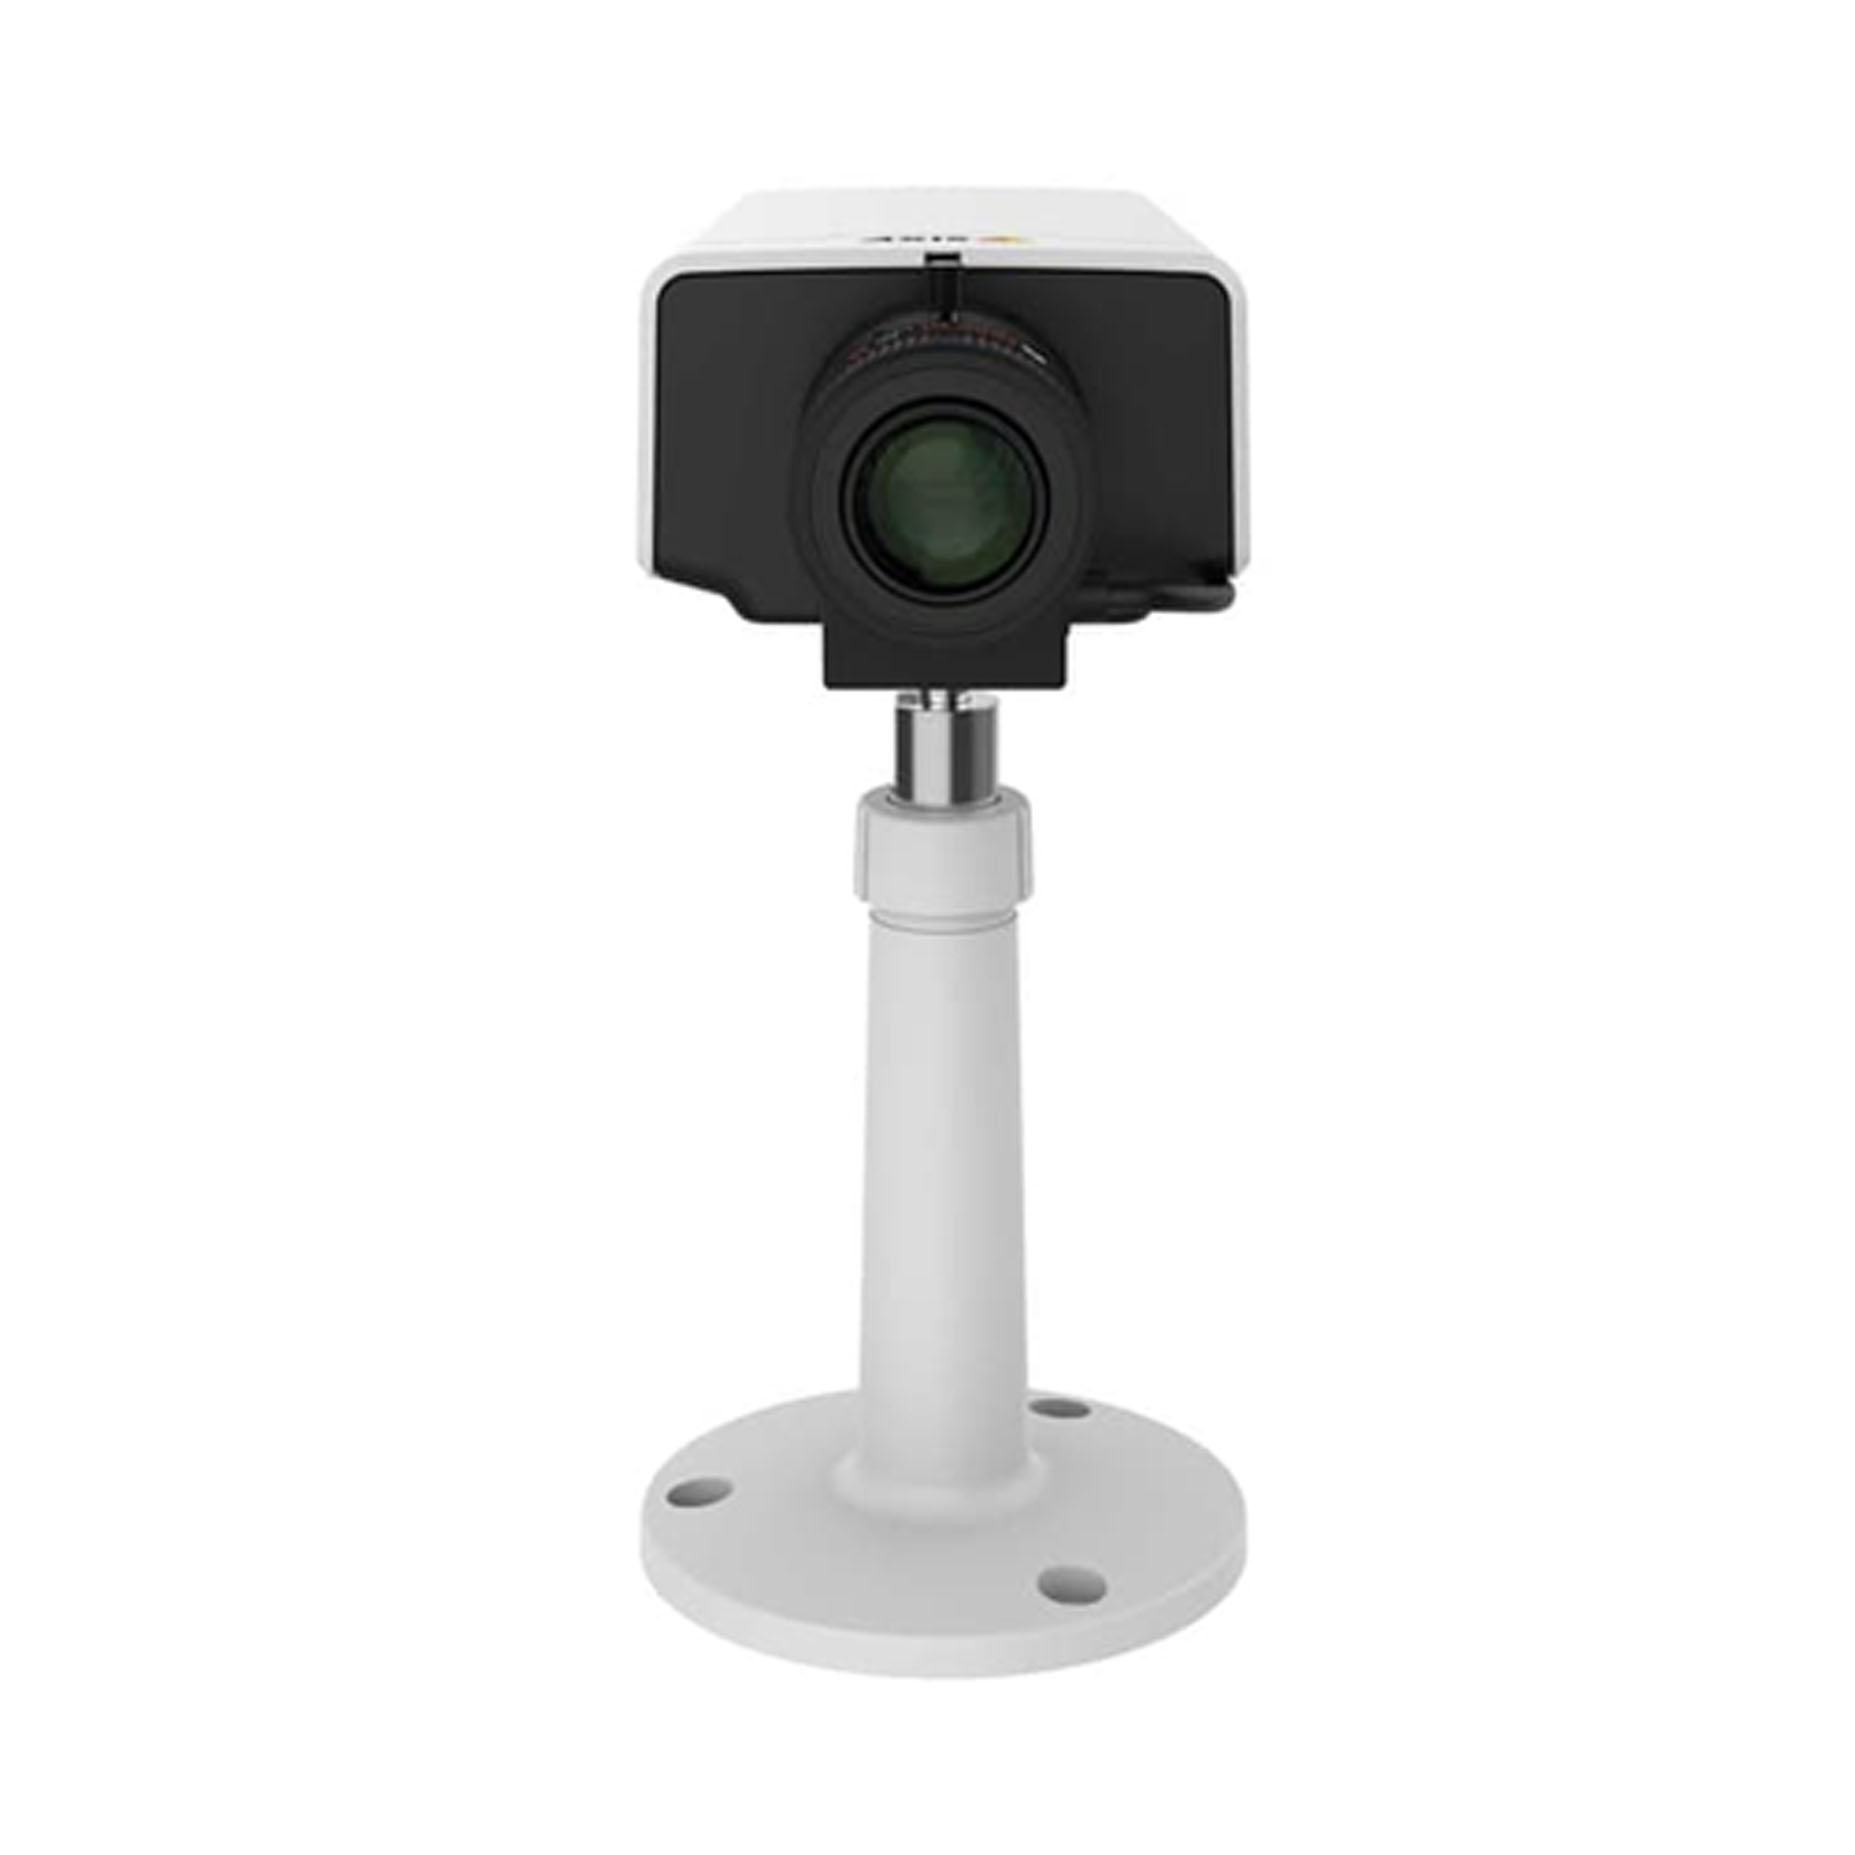 Harga Jual AXIS M1125 Network Cameras Affordable and feature-rich HDTV 1080p camera